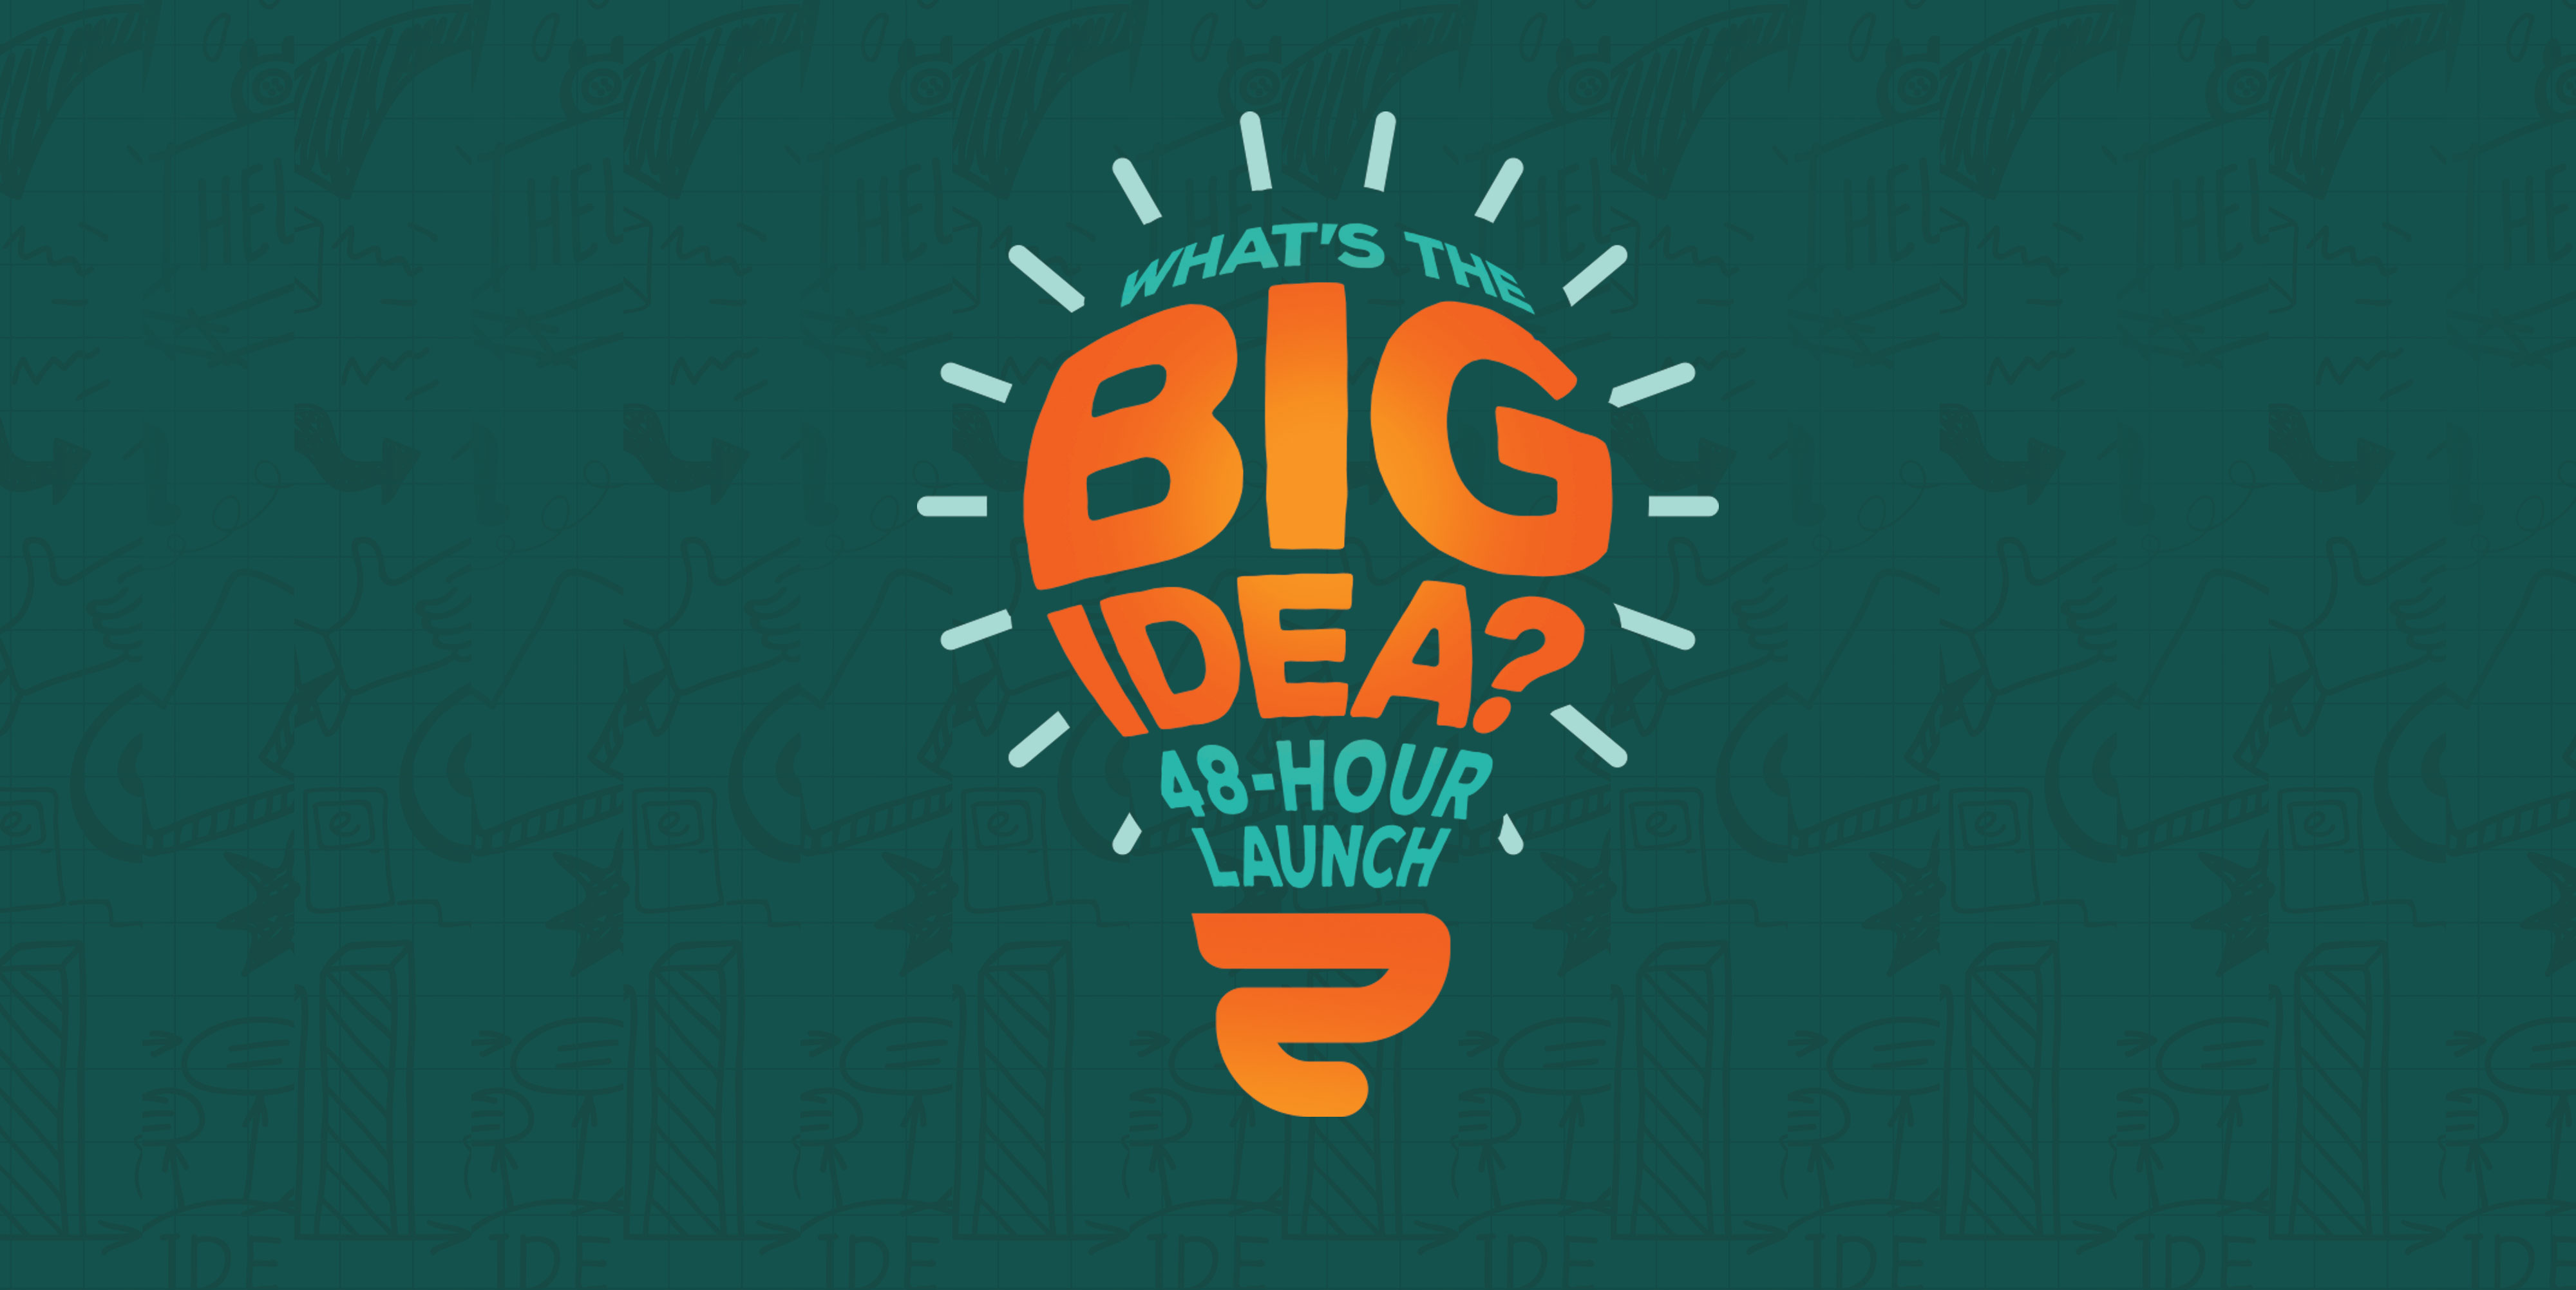 Finalists Selected for 2017 What's the Big Idea 48-Hour Launch